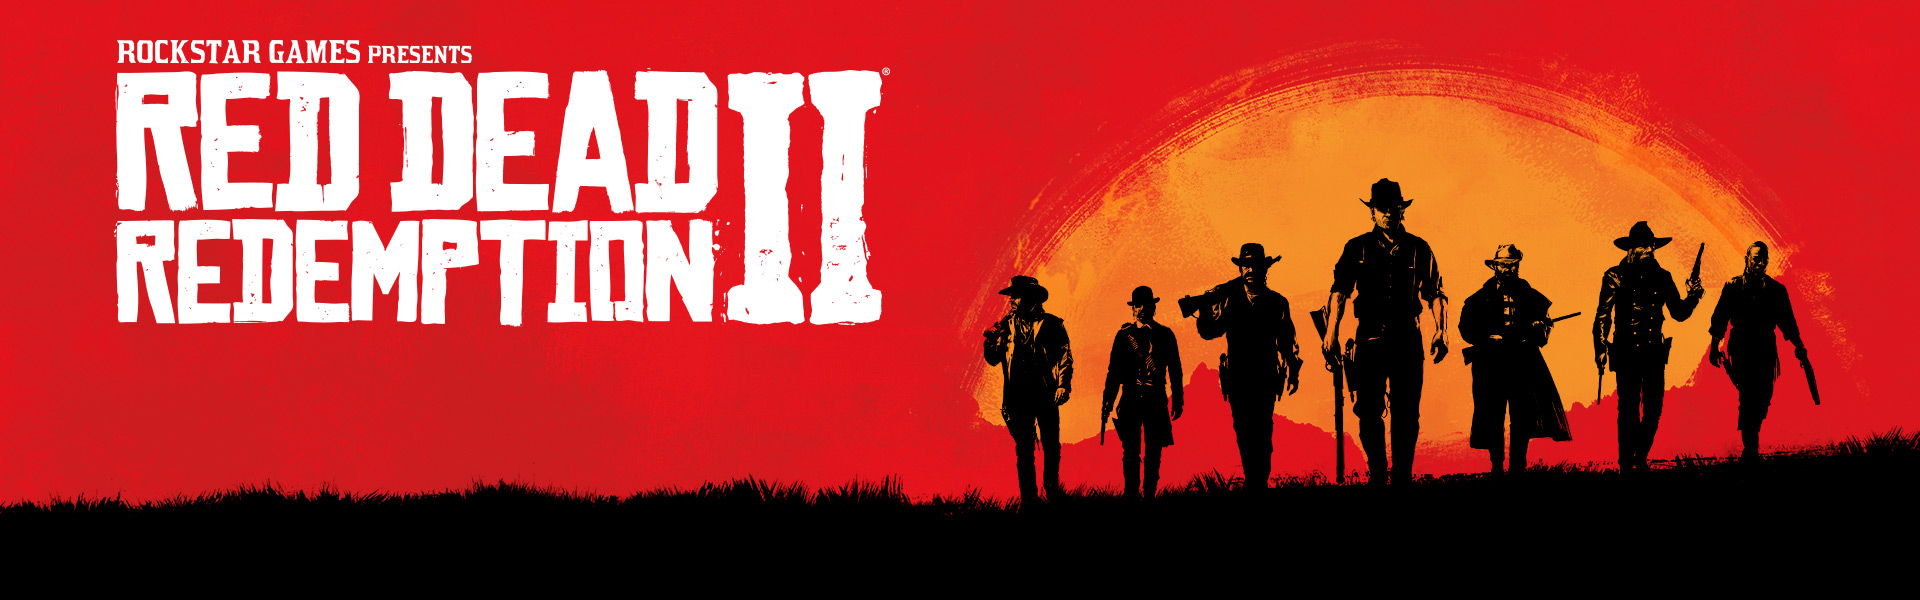 Red Dead Redemption 2-helt